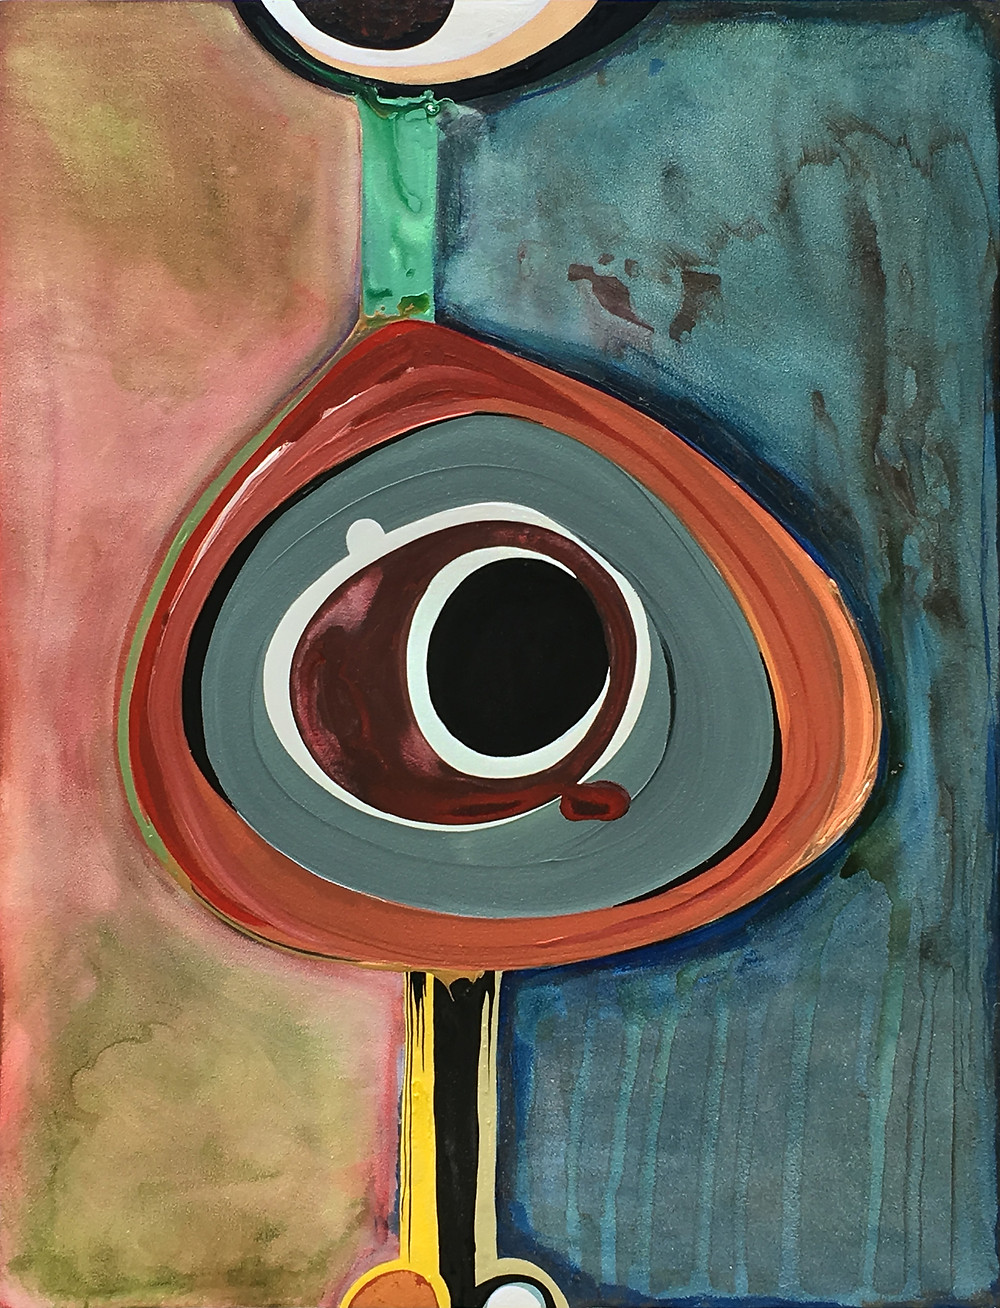 Mid Century Modern Inspired Paining by Robin Arthur